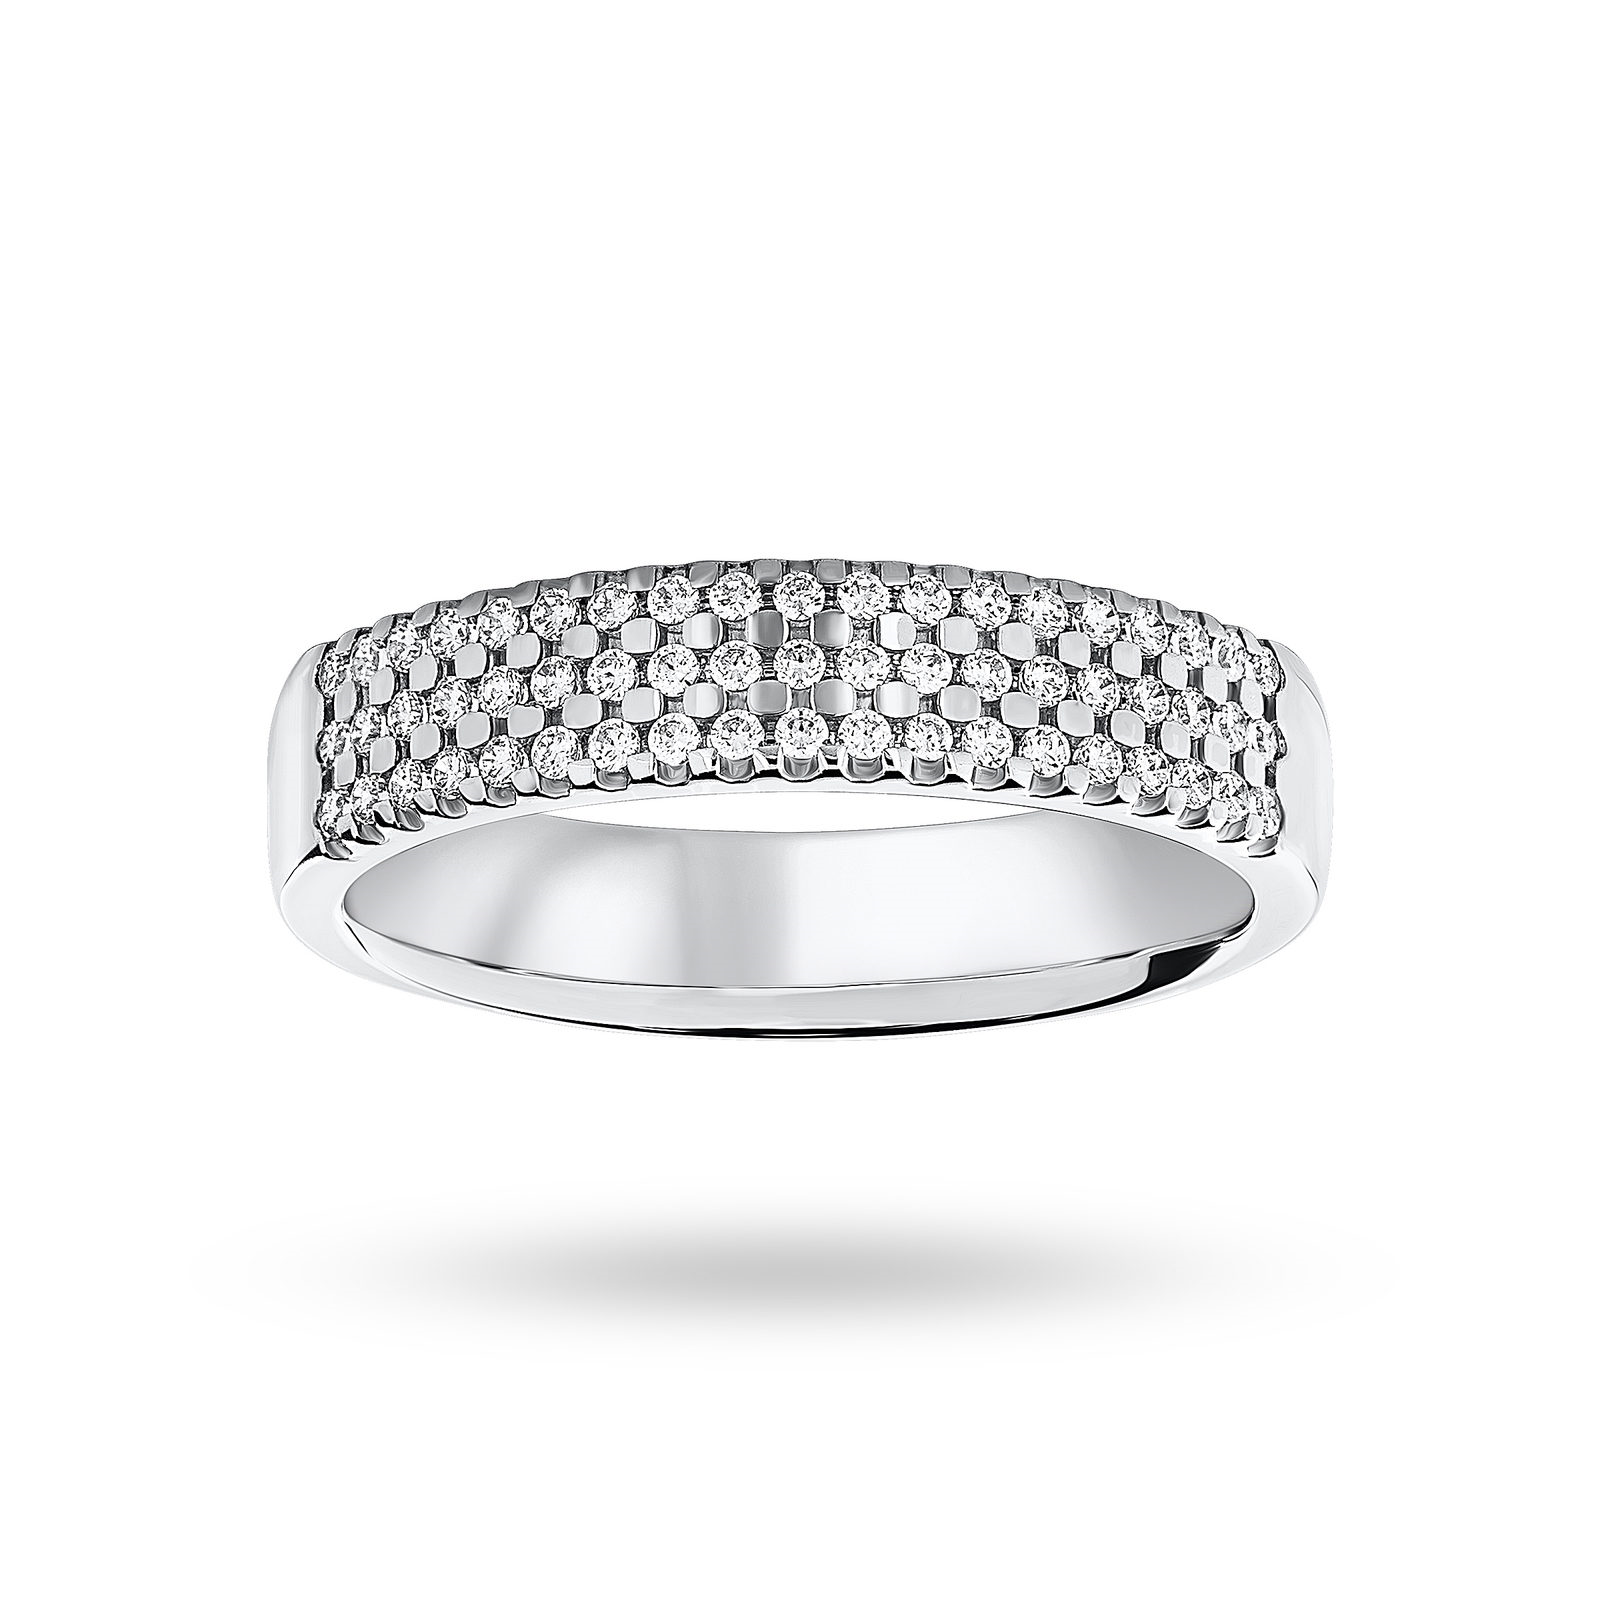 18ct White Gold 0.29ct 3 Row Half Eternity Ring - Ring Size J